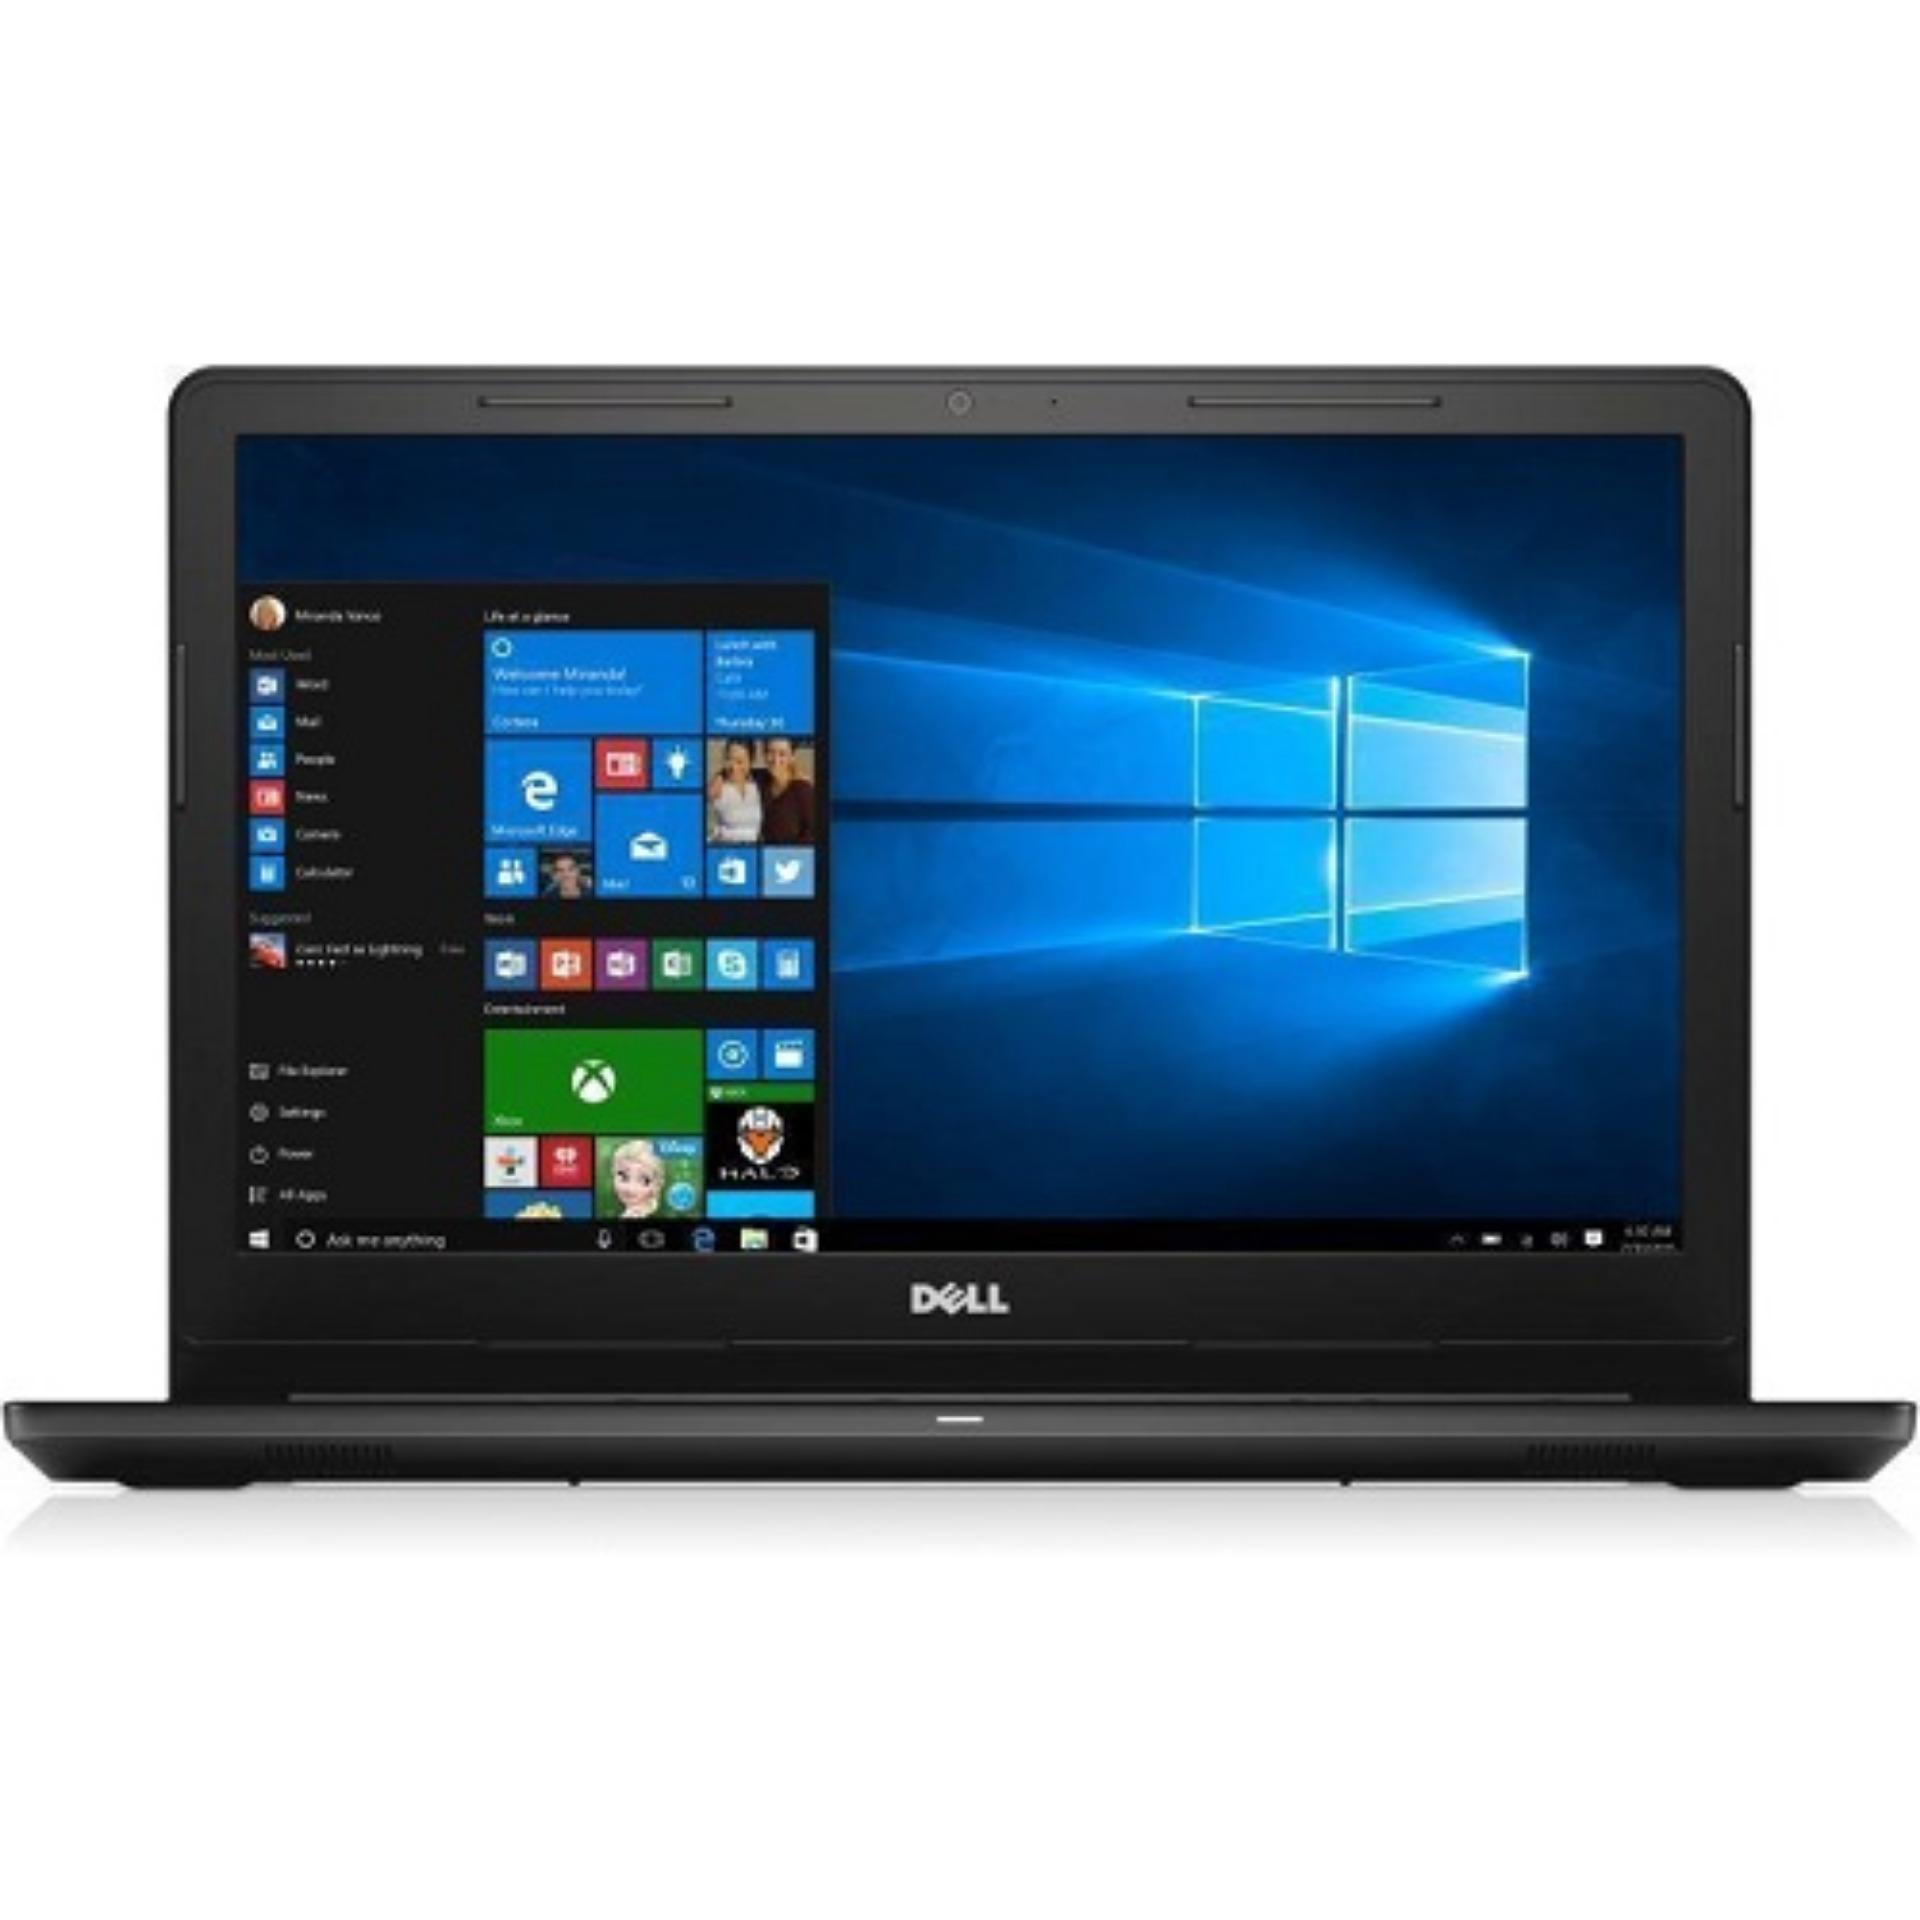 New INSPIRON 15 3000 SERIES 3567 7th Gen i5 7200U 4GB RAM 1TB AMD Radeon R5 M430 Graphics with 2GB DDR3 15 inch display Windows10H Numeric Keyboard DVD-RW 1 year dell warranty